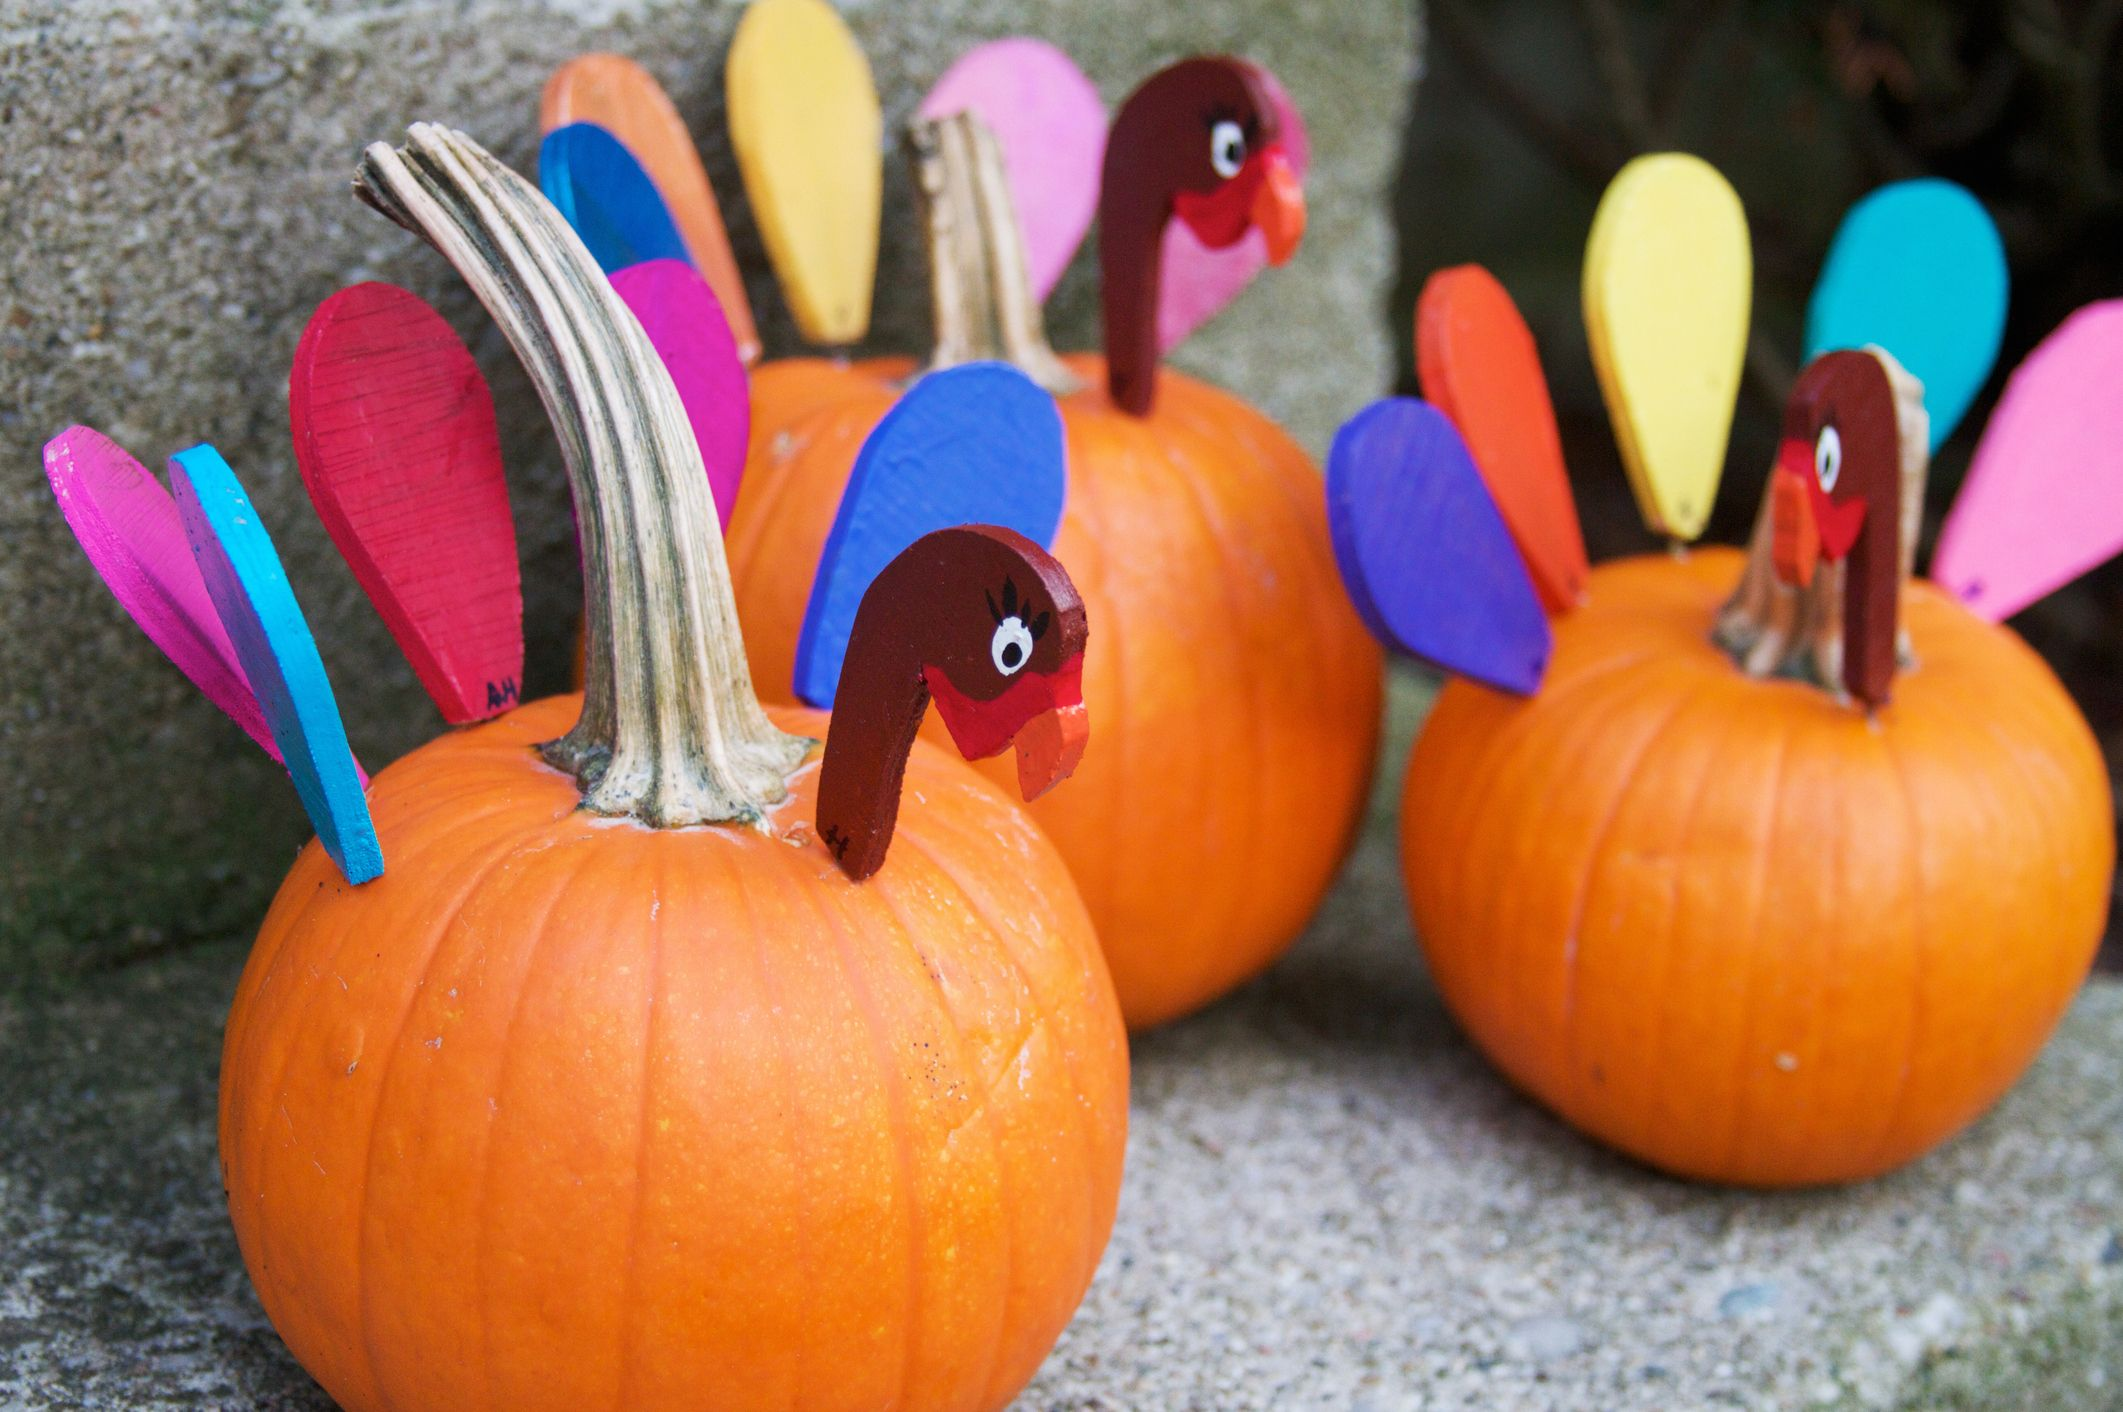 15 Easy Turkey Crafts for Kids That Will Make Them Excited for Thanksgiving